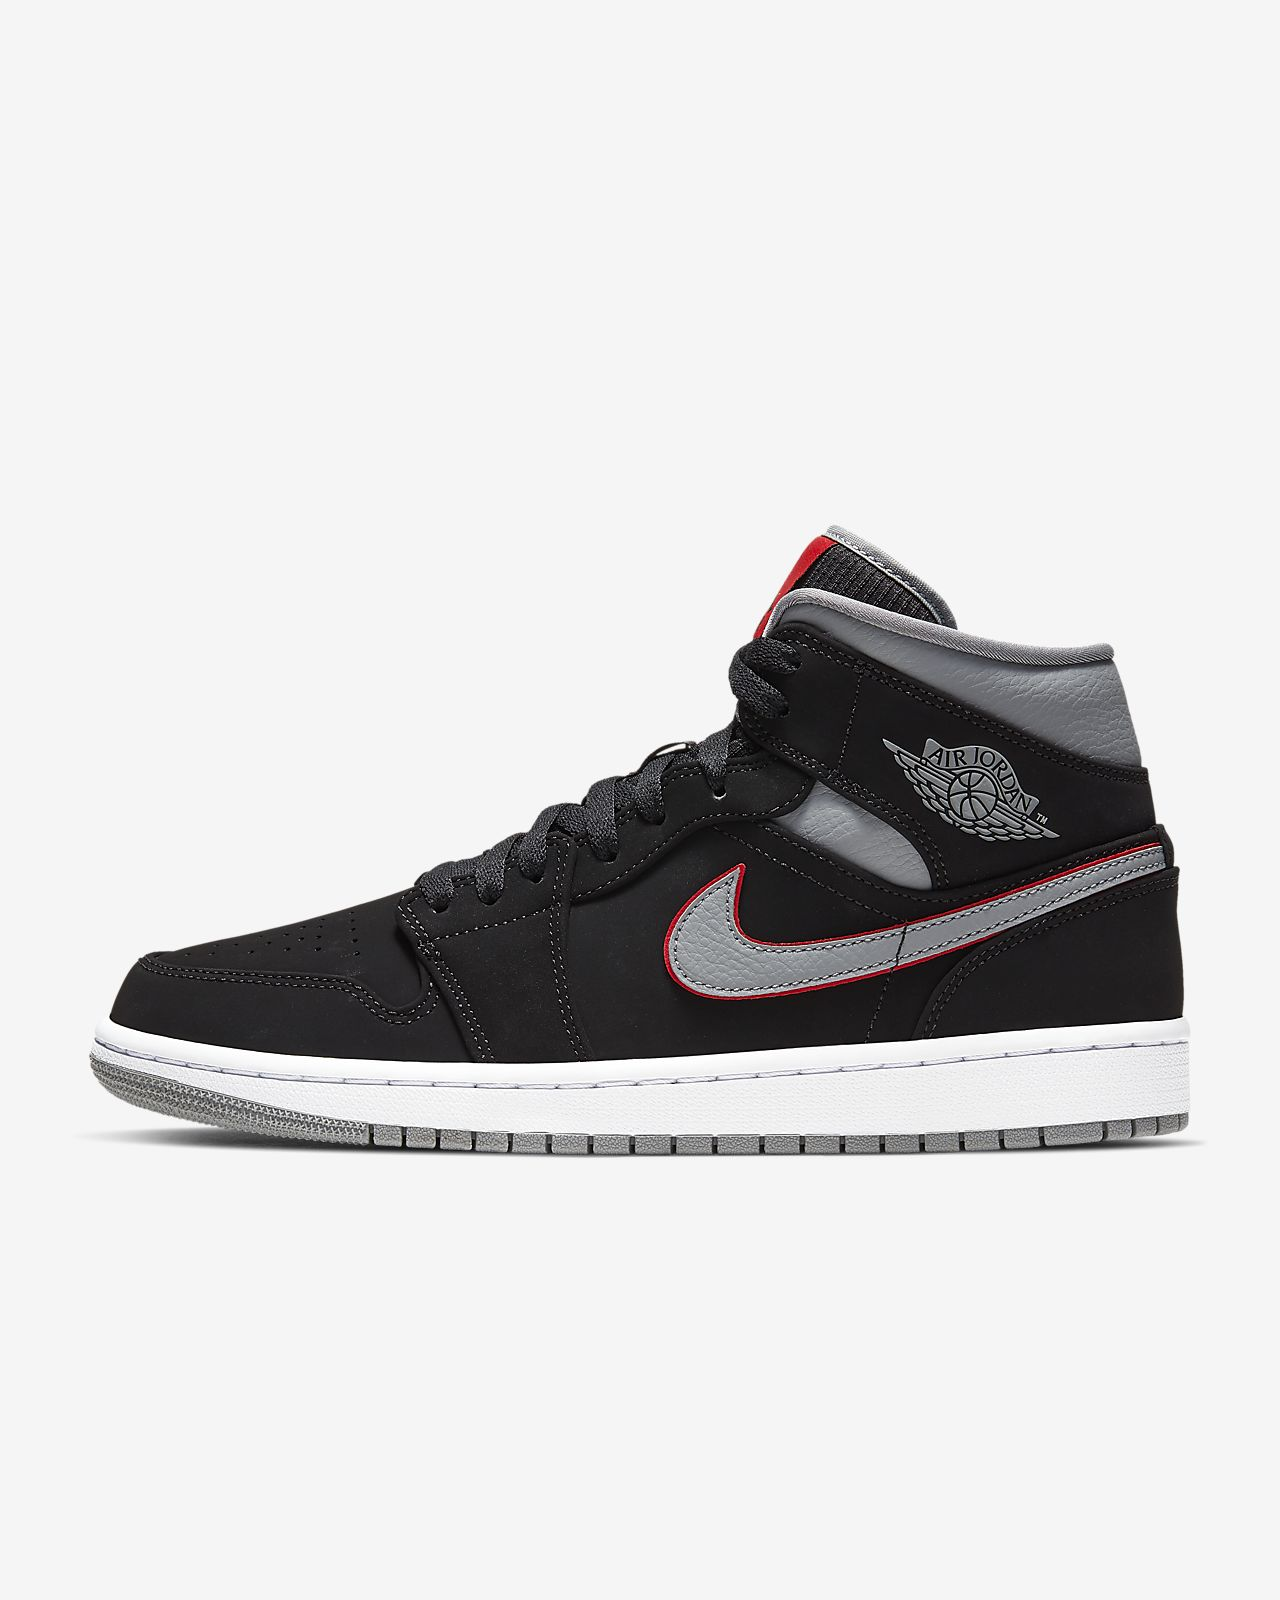 6828d2e5d03cf Air Jordan 1 Mid Men s Shoe. Nike.com CA